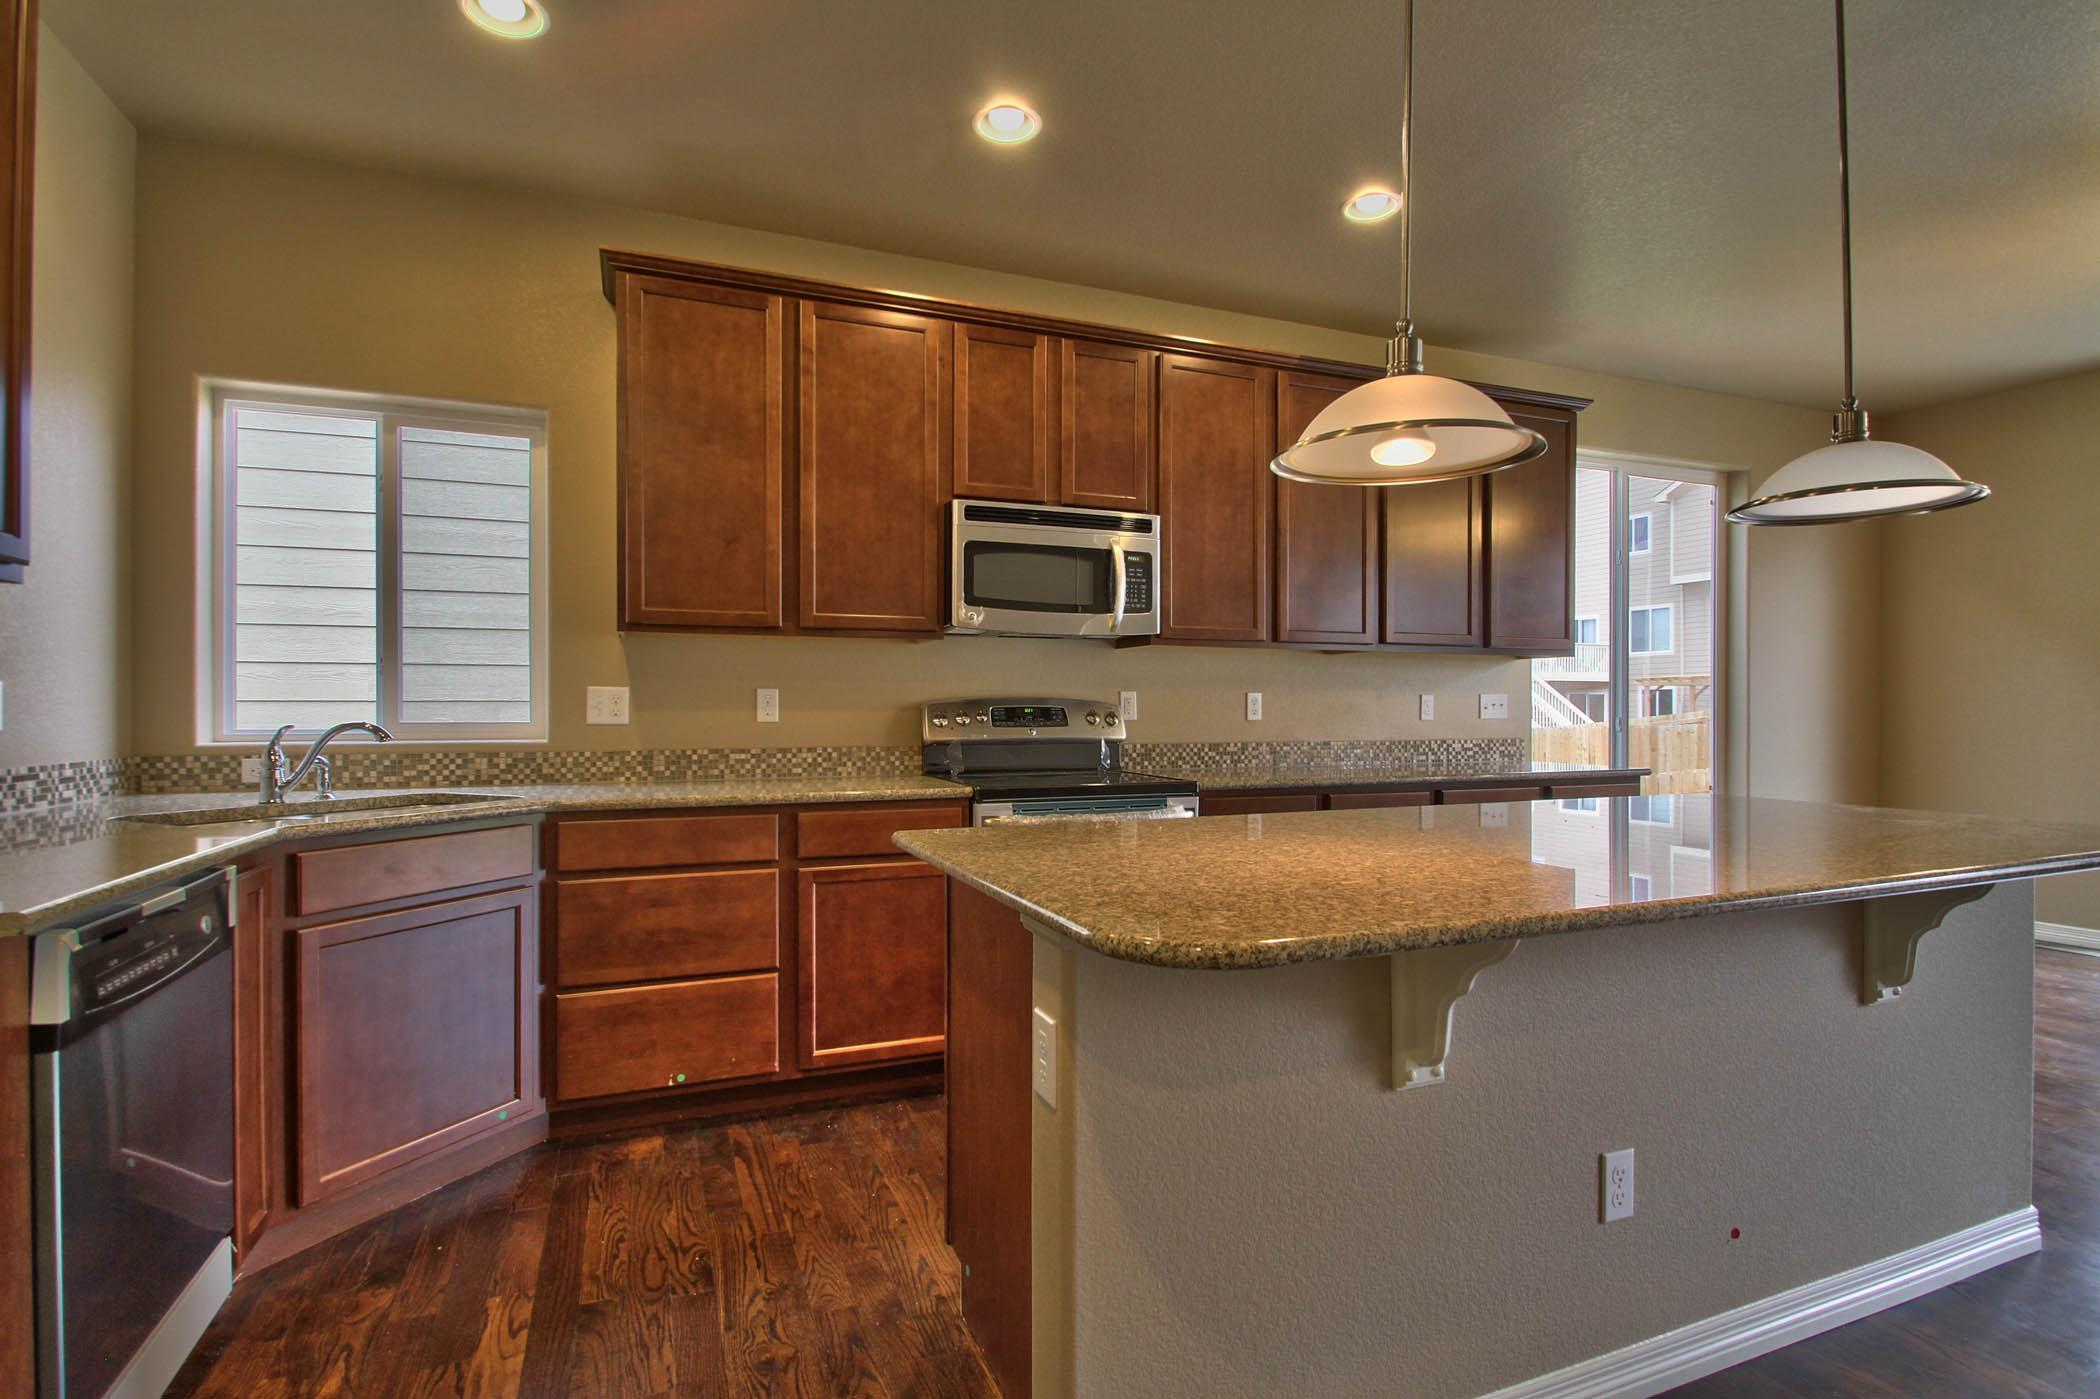 Kitchen featured in the Cutler (Unfinished Basement) By Reunion Homes in Colorado Springs, CO